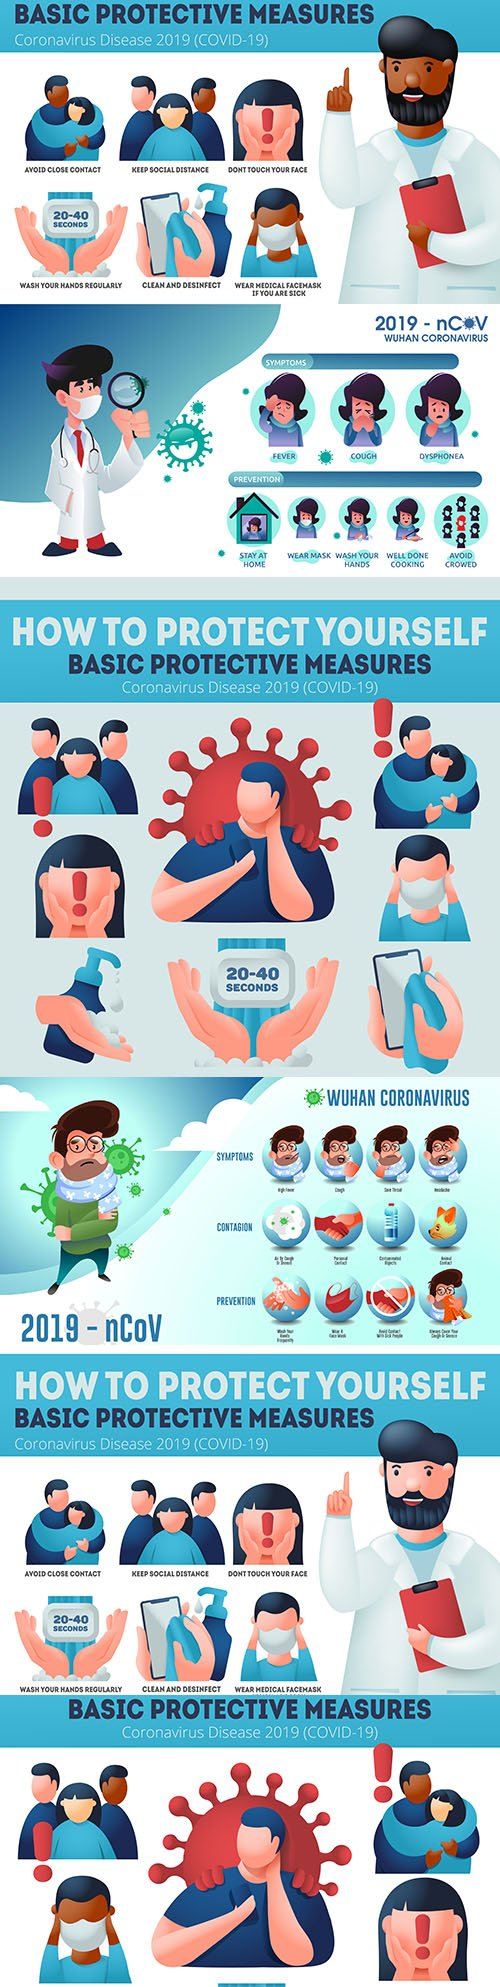 Coronavirus prevention covid-19 and infographic protection measures